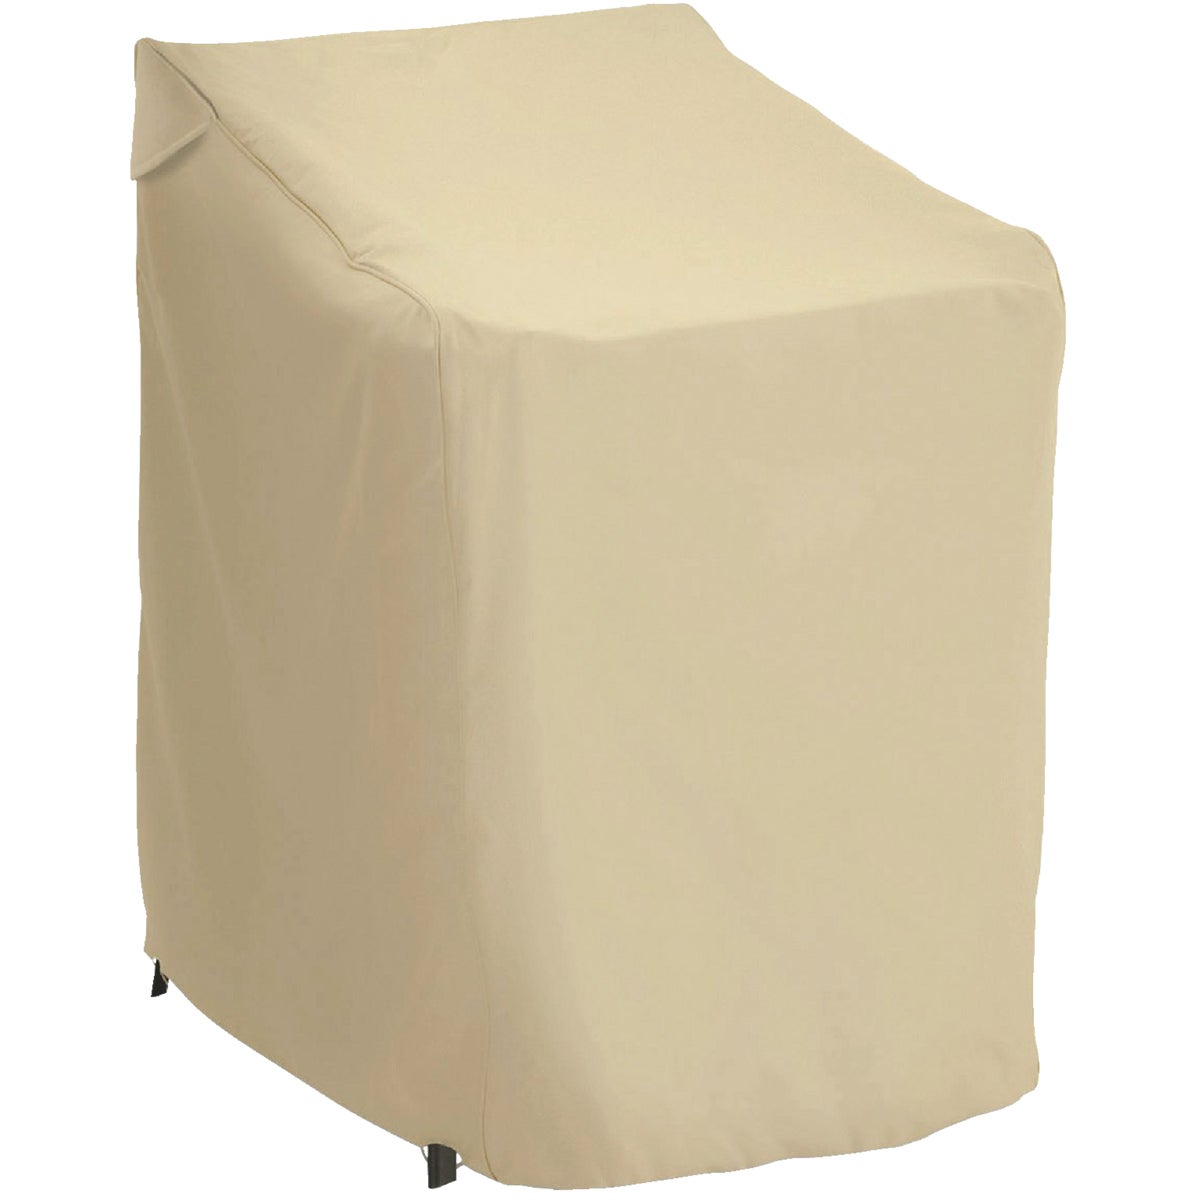 TERAZO STACK CHAIR COVER - 58972 by Classic Accessories